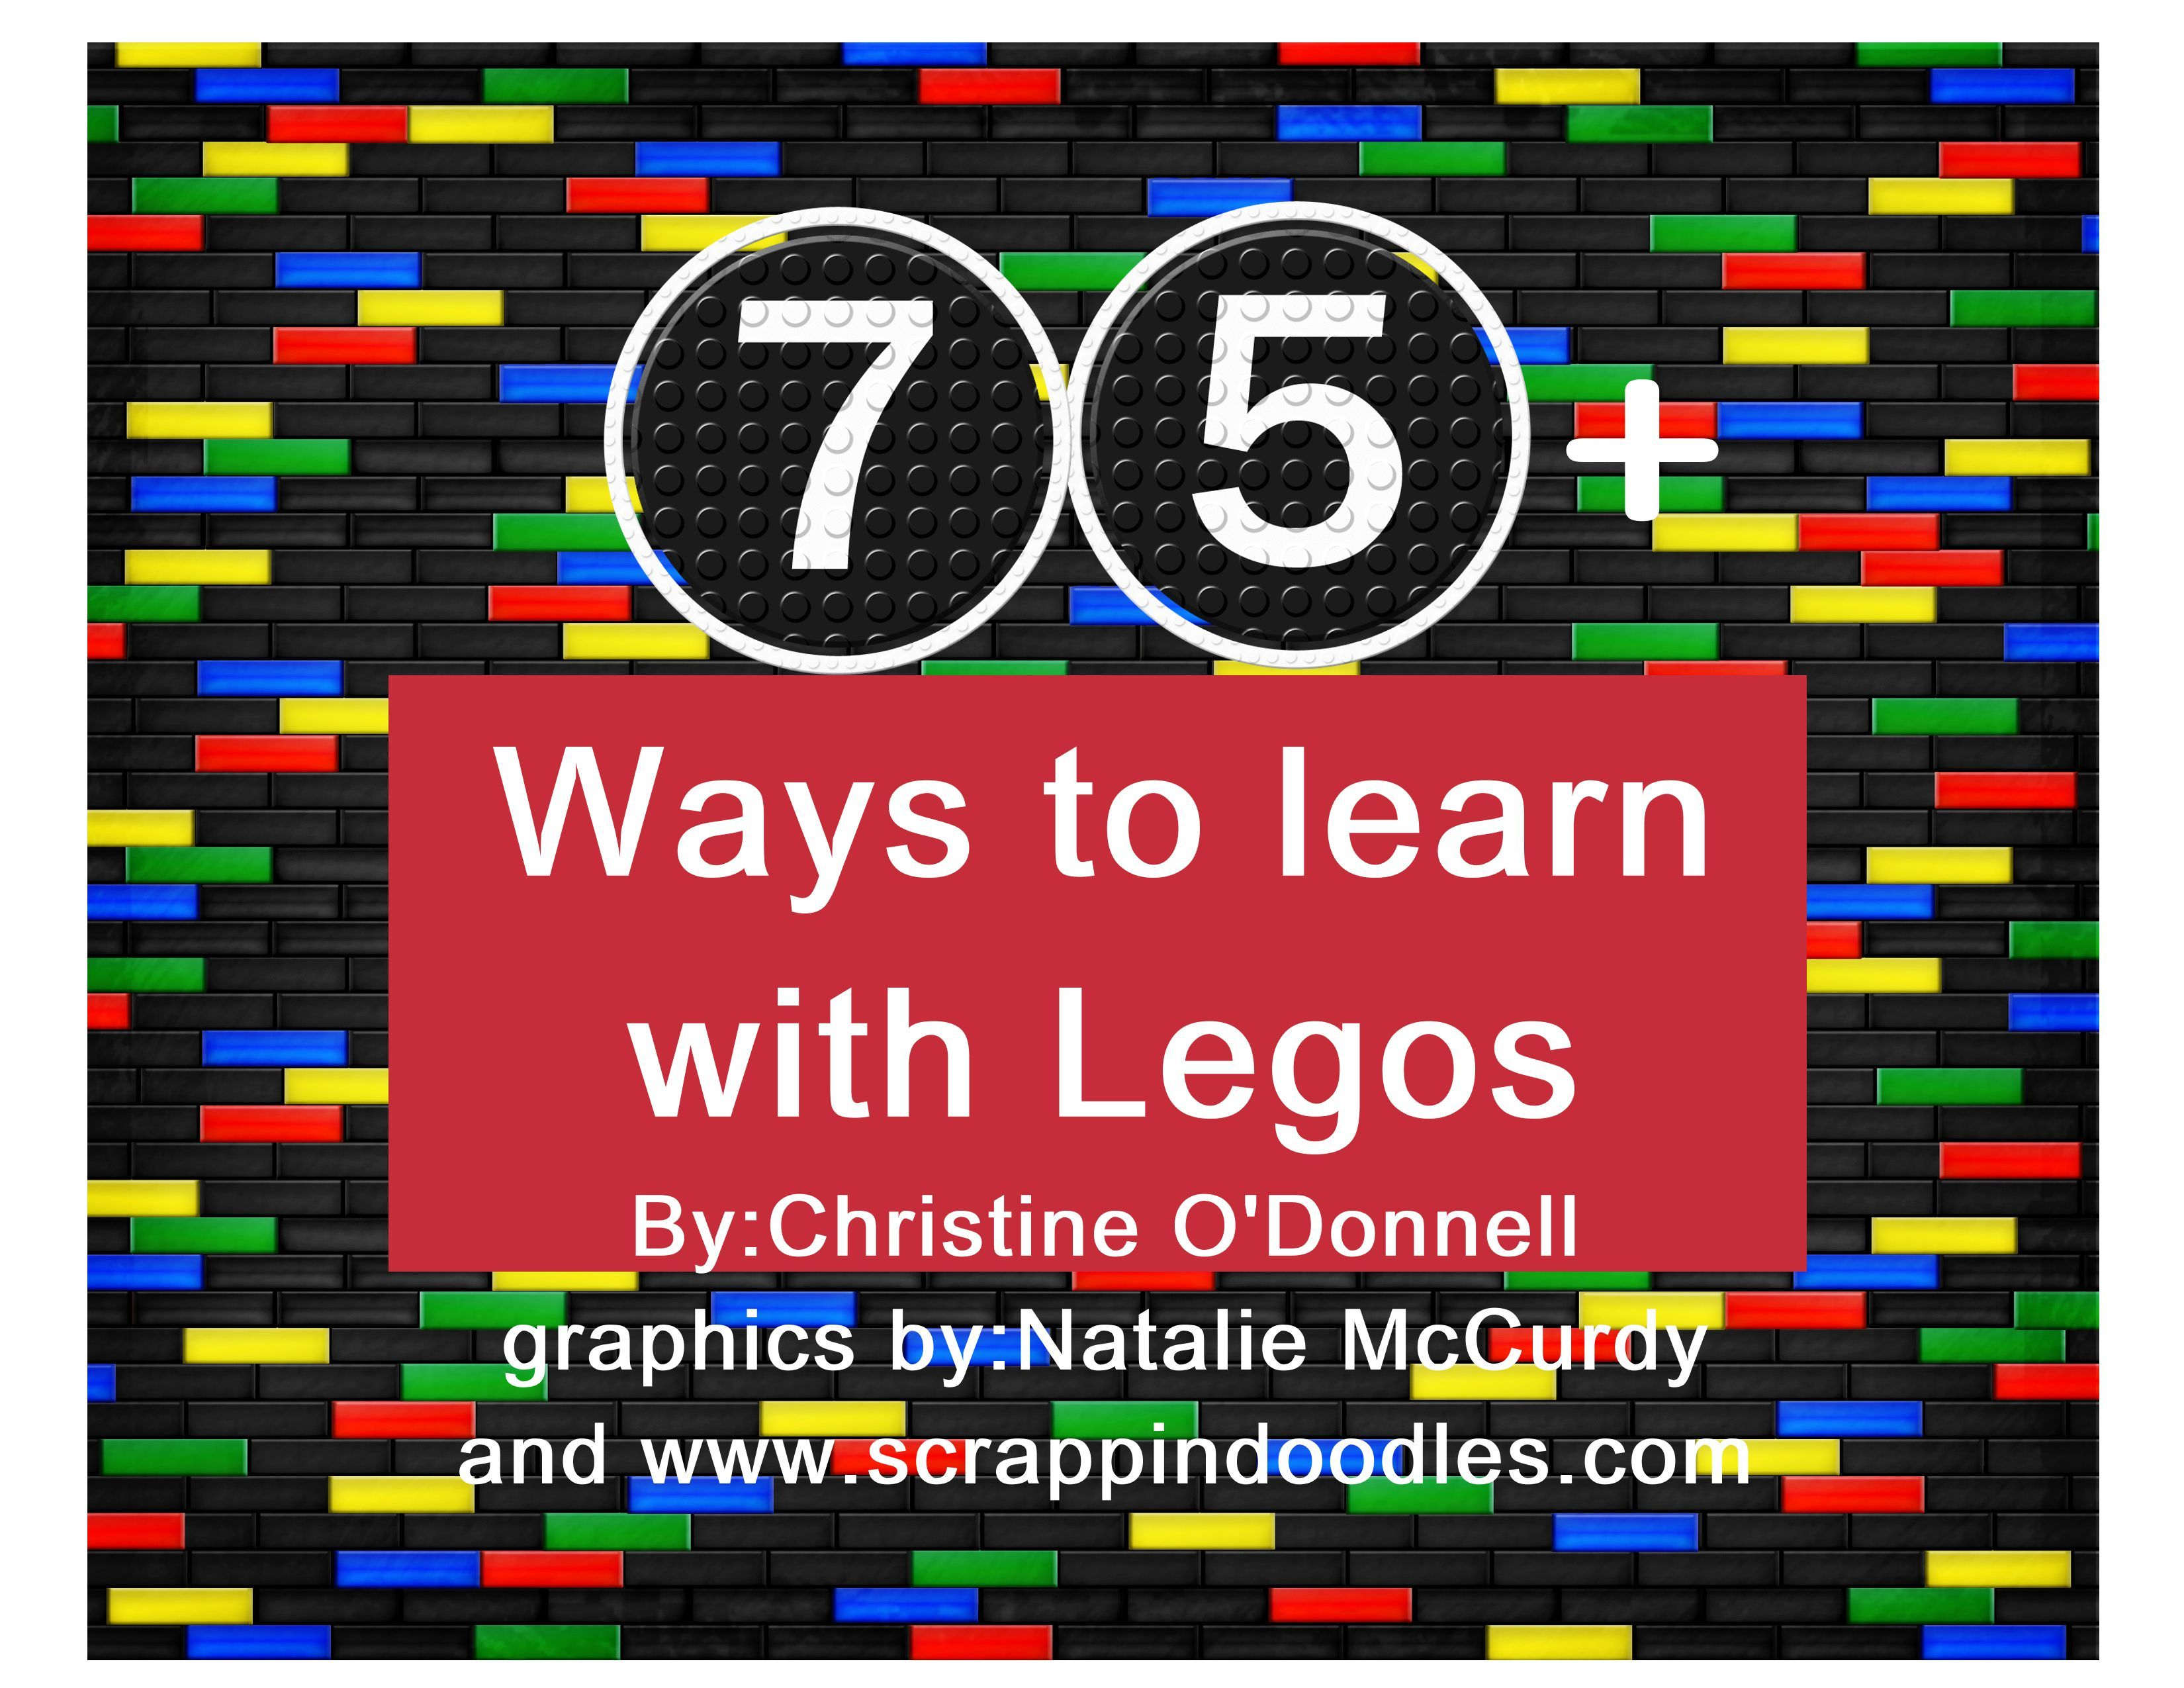 75 Activities To Learn With Legos